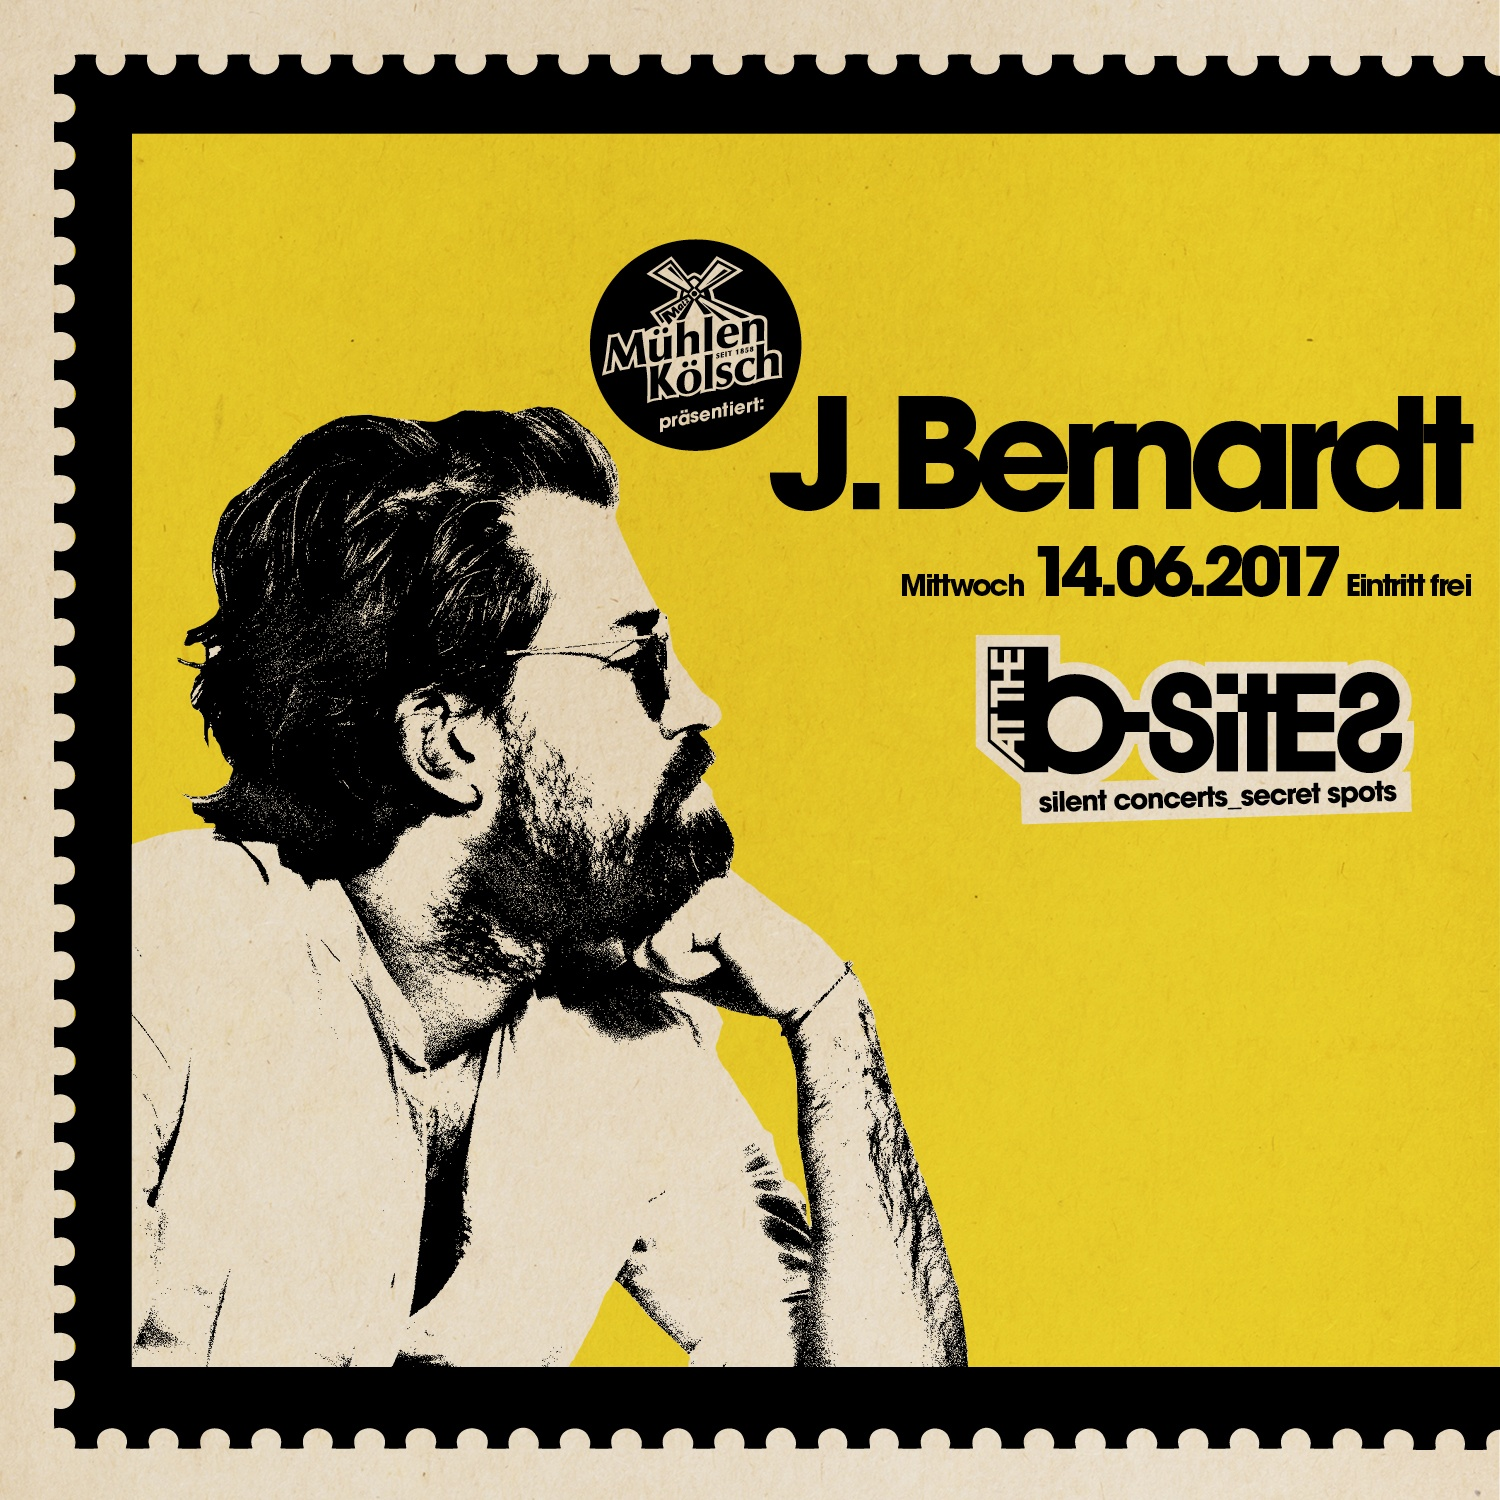 J. BERNARDT at the b-sites